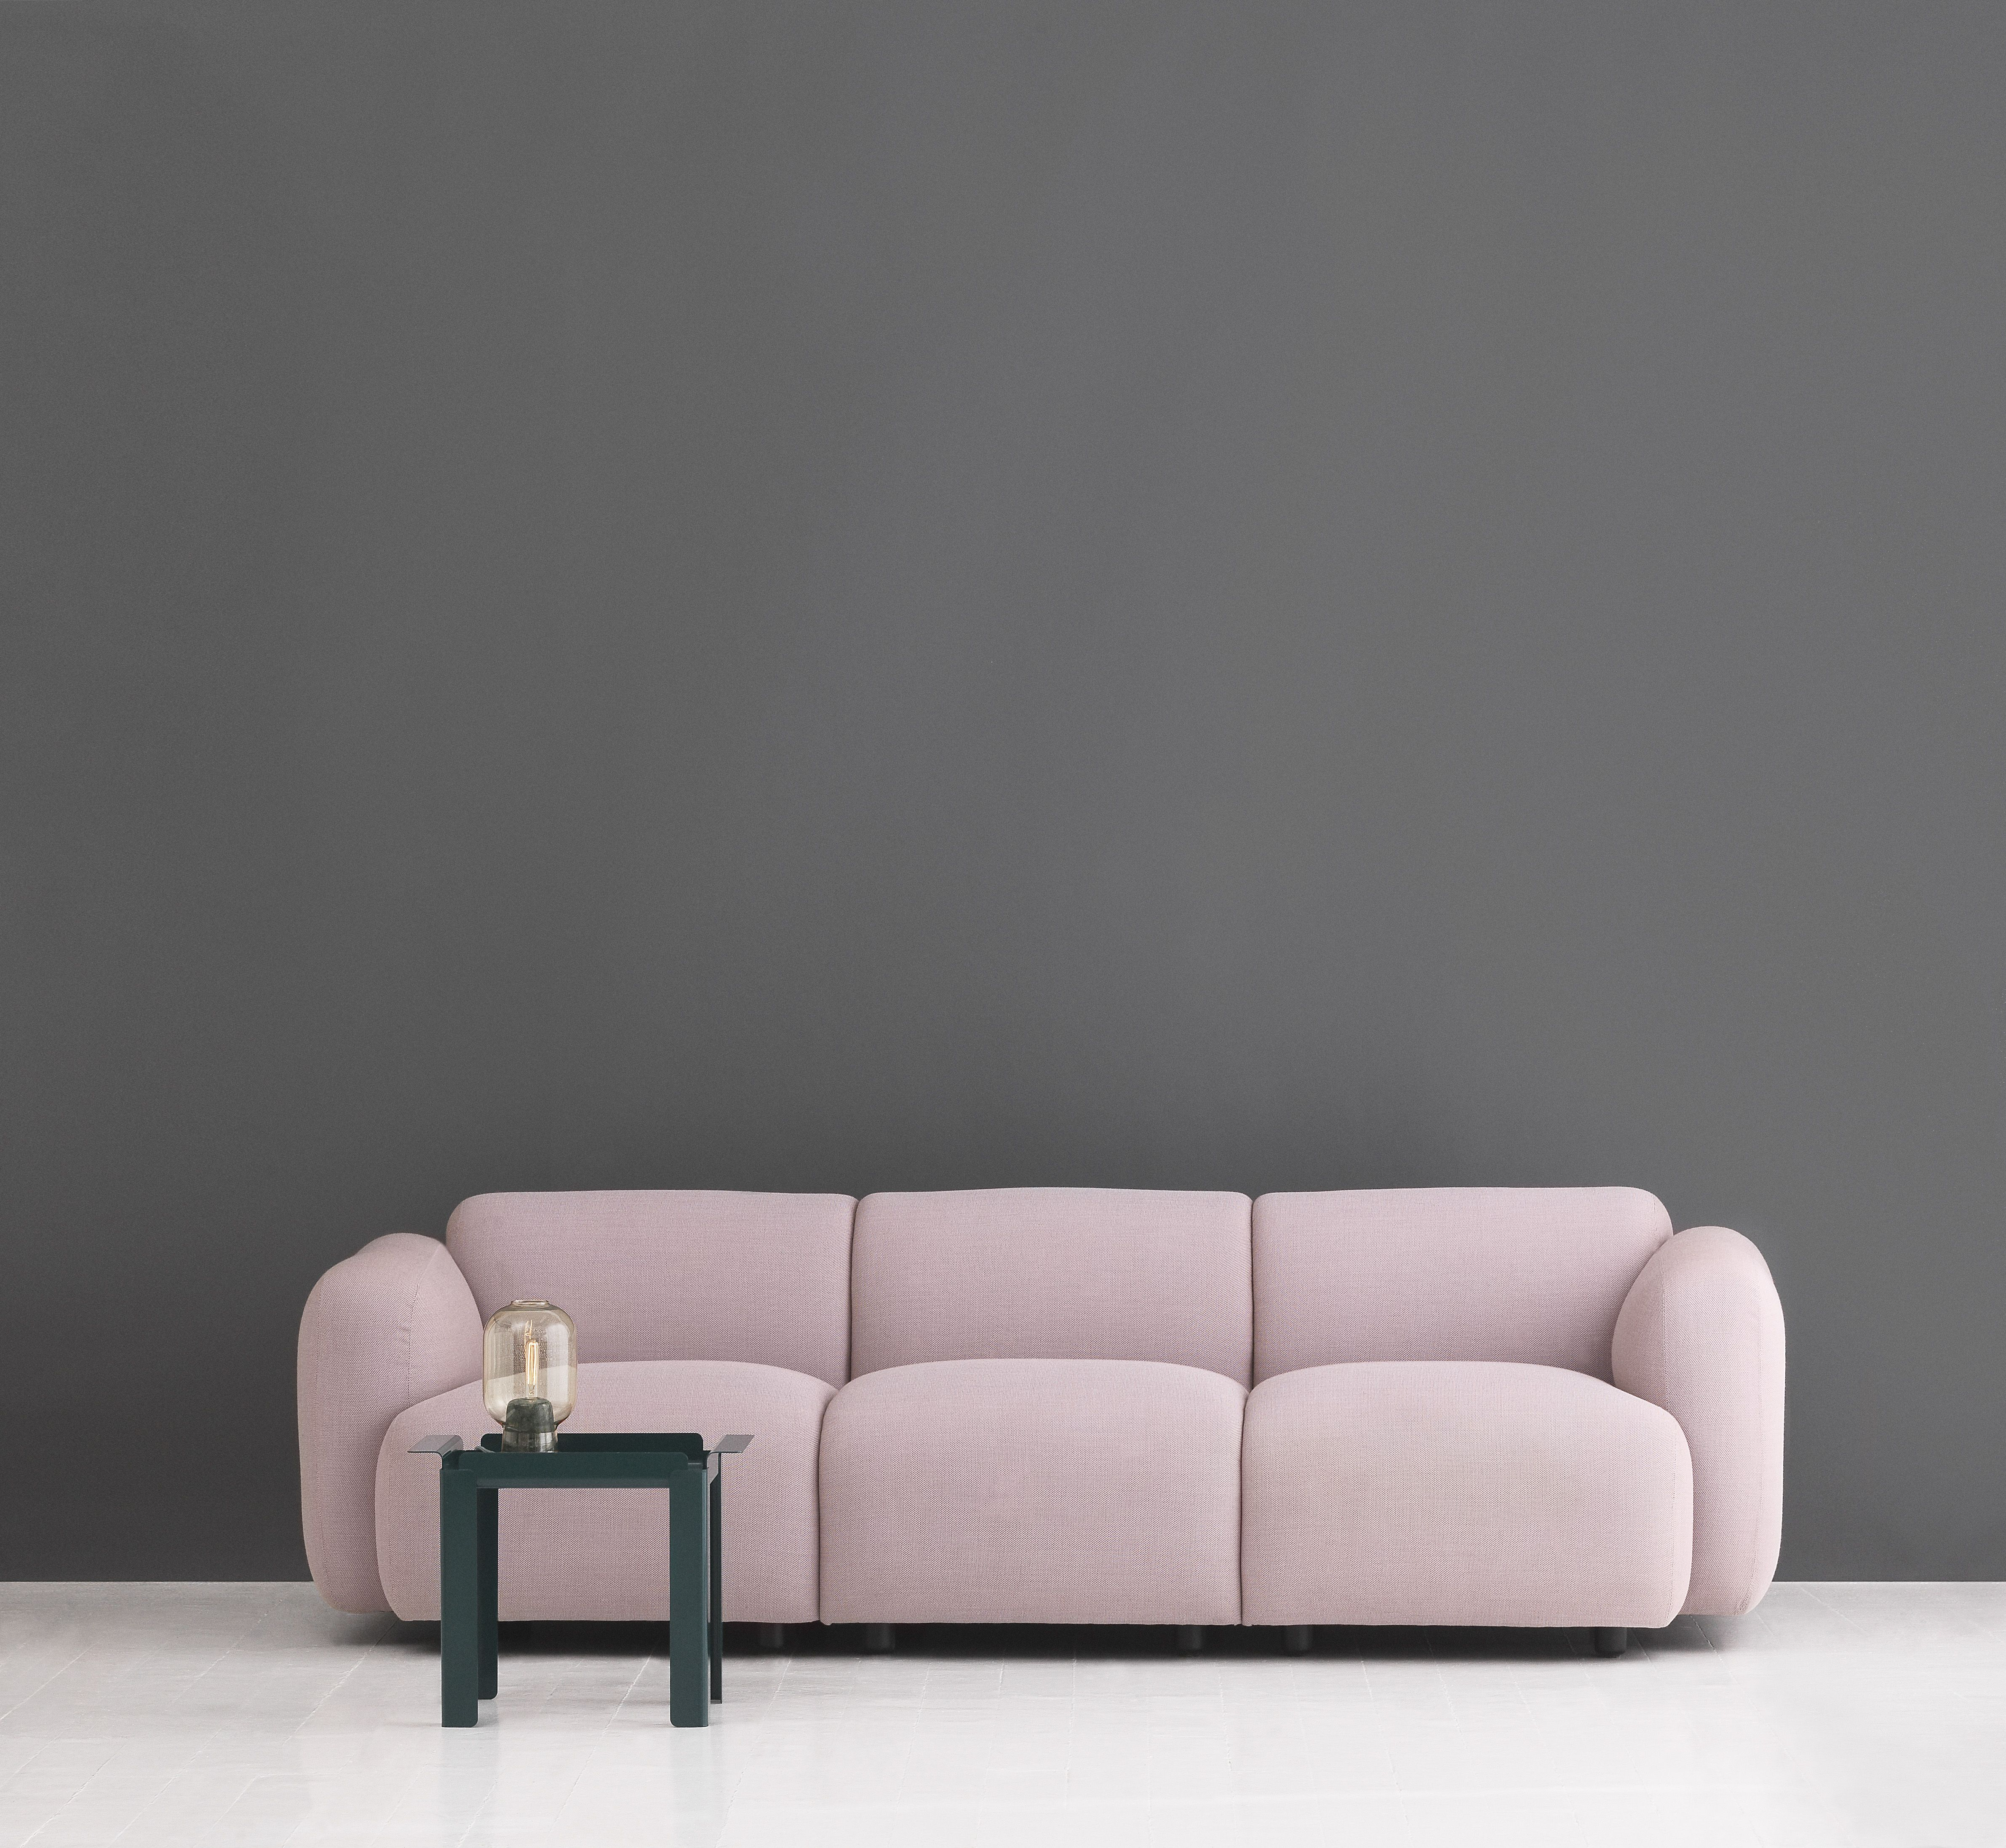 Funky Furniture Ottawa A Rose Swell Sofa And Box Table From Normann Copenhagen